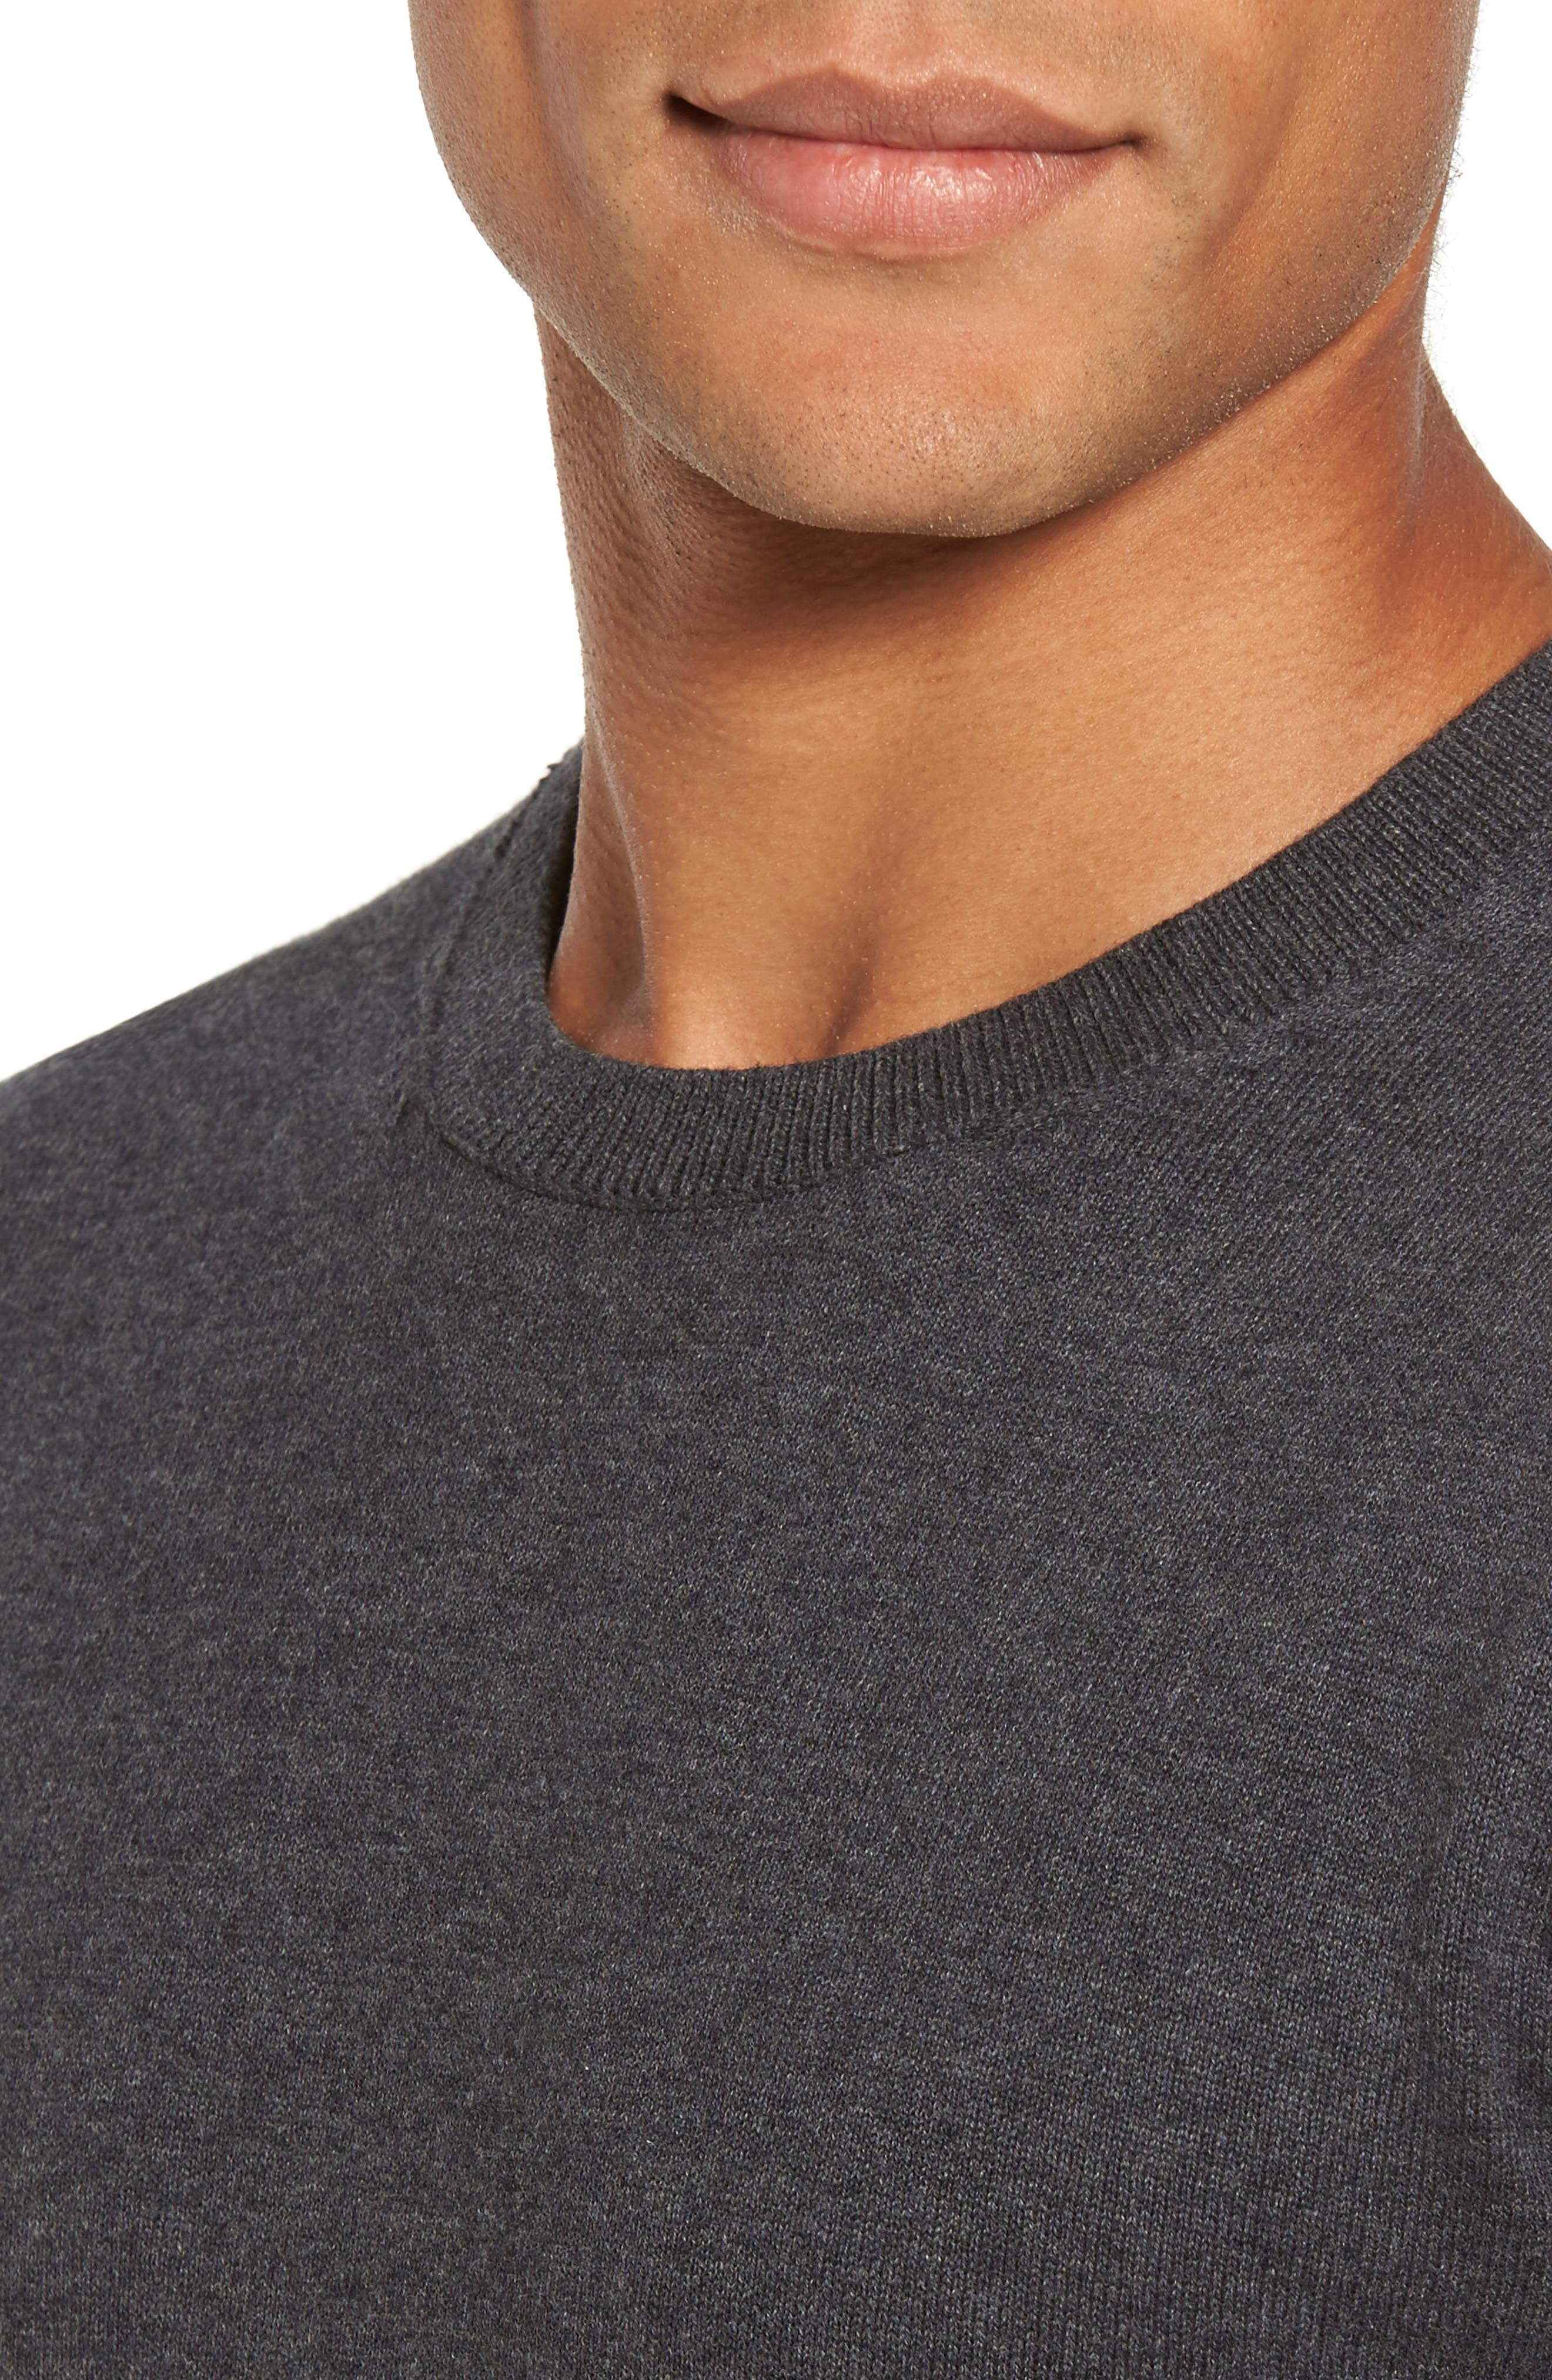 Portrait Crewneck Sweater,                             Alternate thumbnail 4, color,                             015